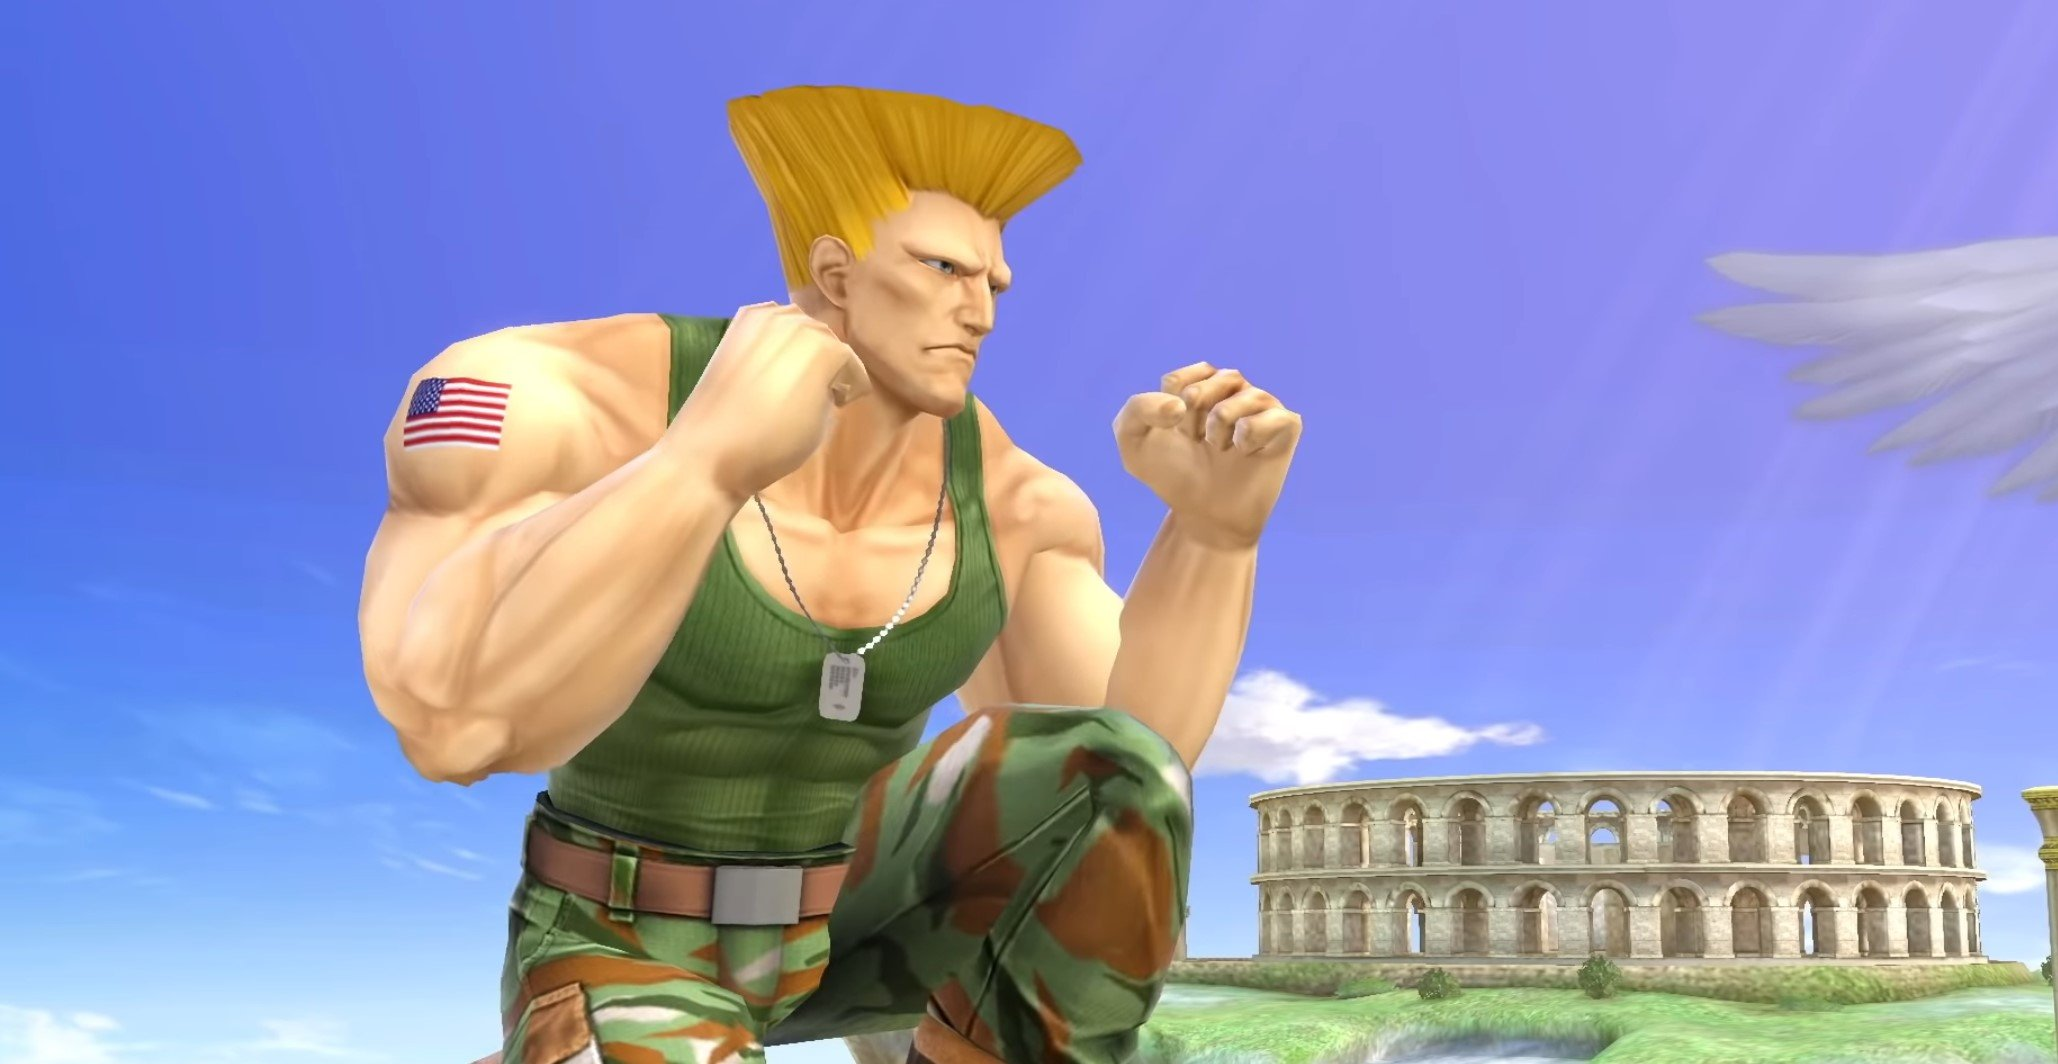 Guile's theme goes with anything, including Super Smash Bros. Ultimate screenshot